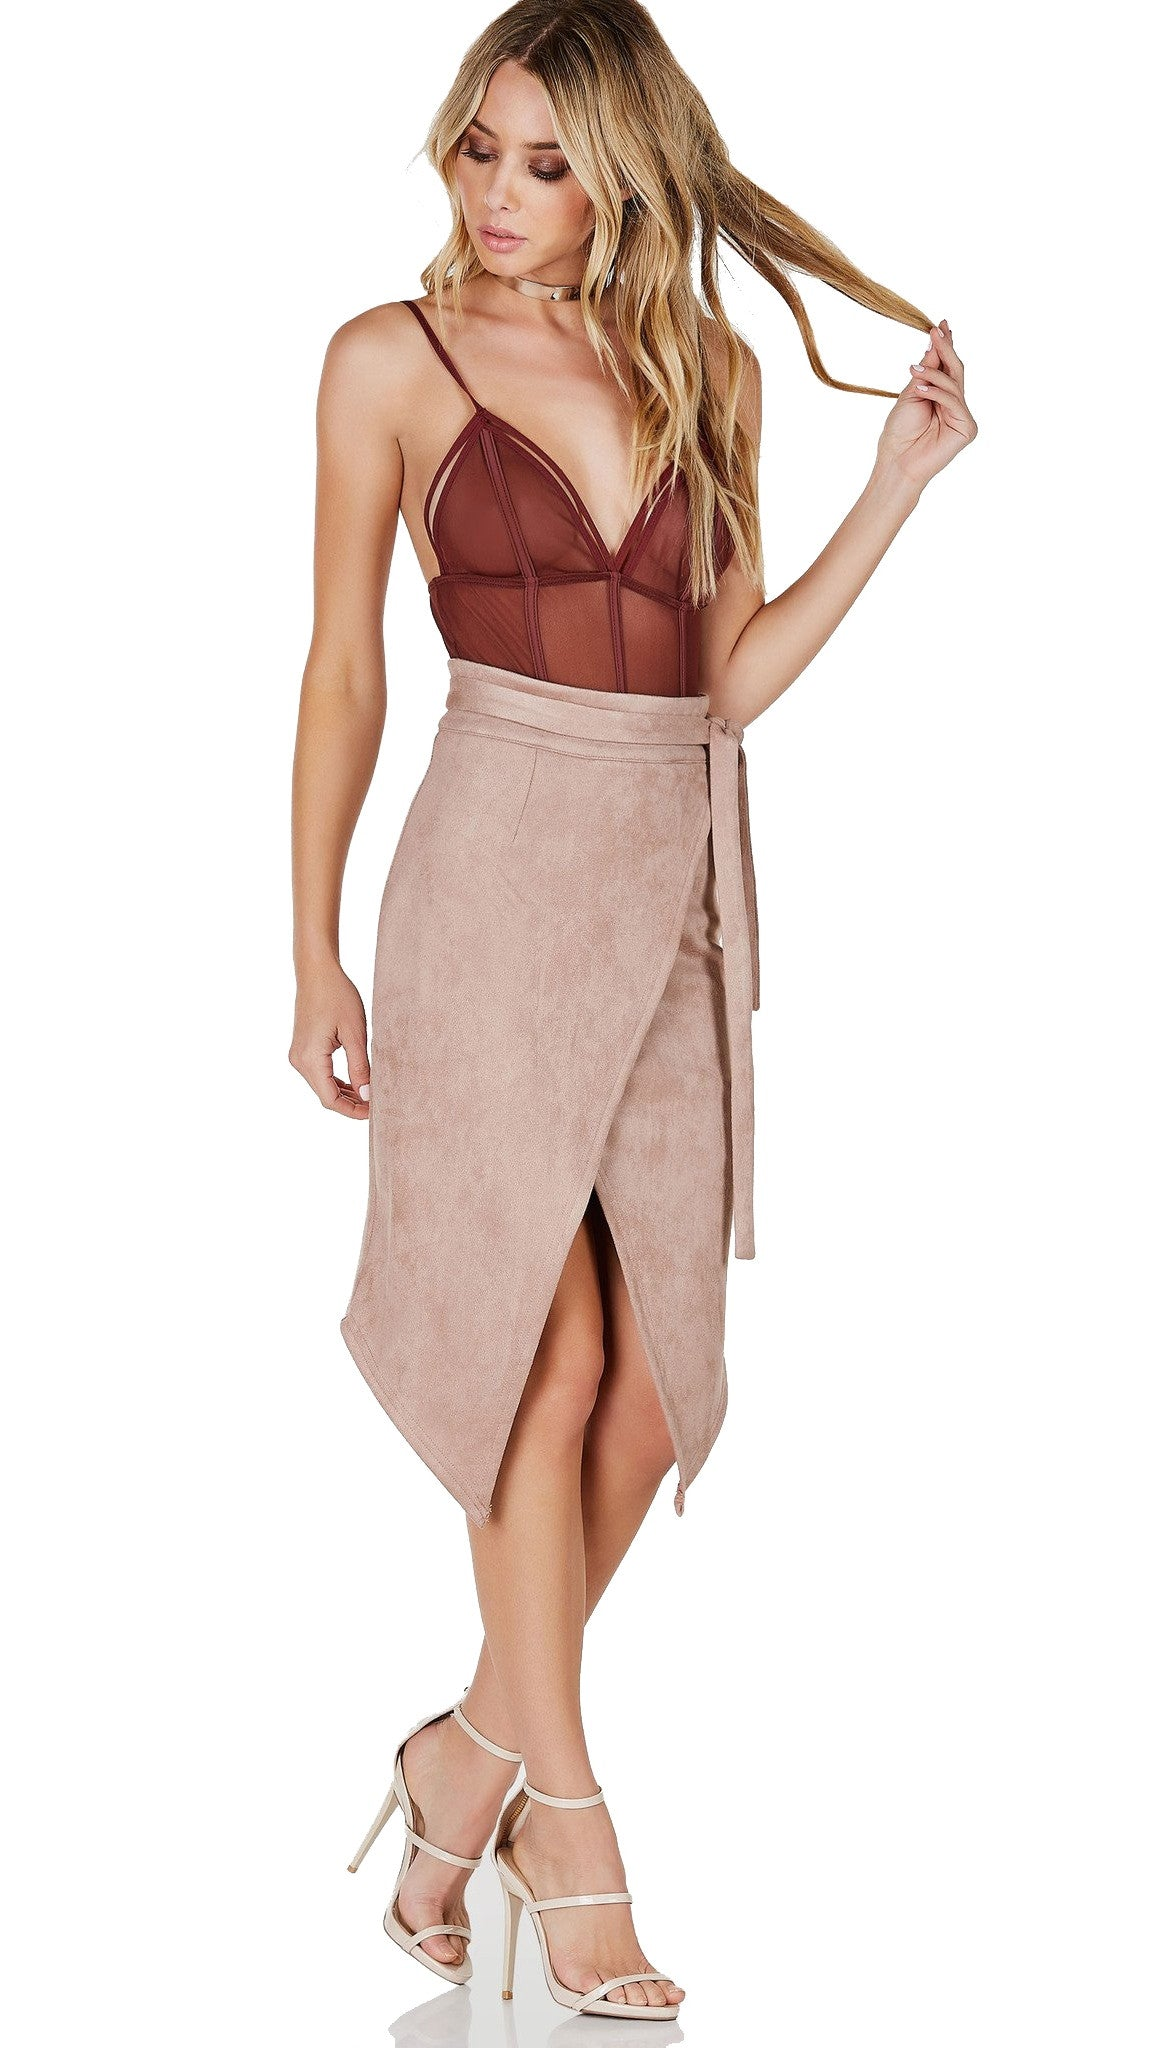 Caged Strappy Mesh Bodysuit Chocolate Brown See Through